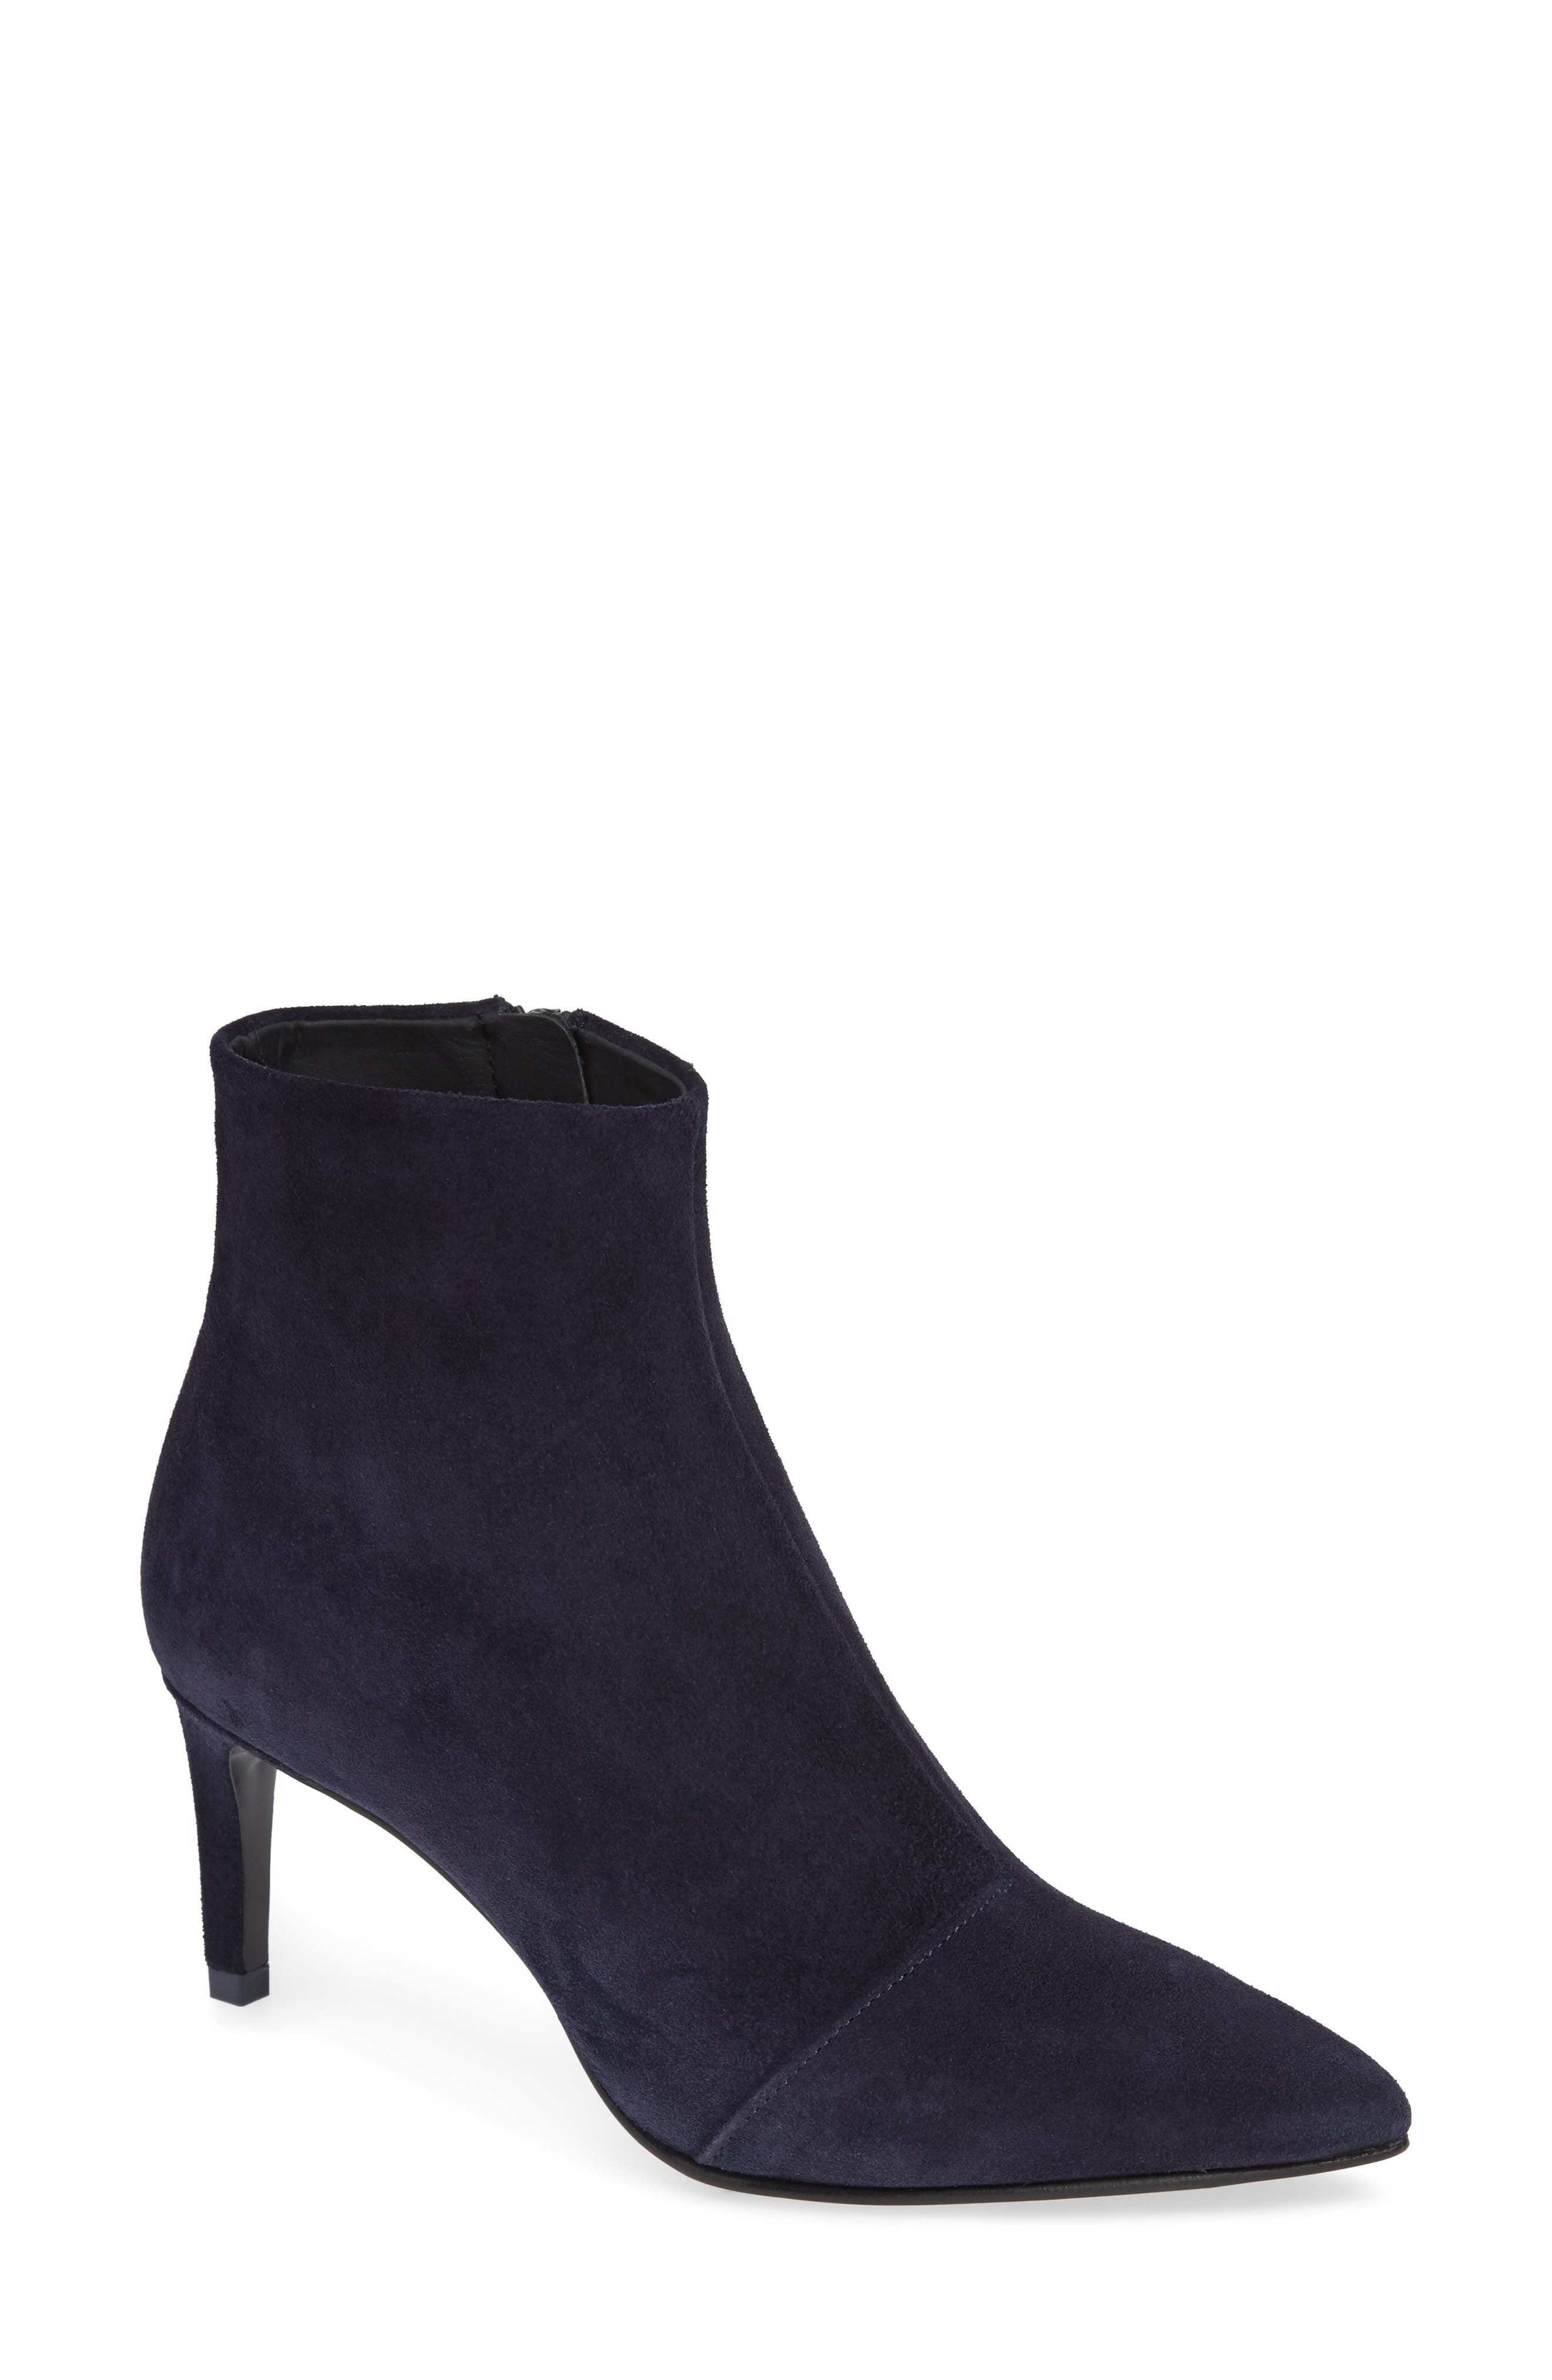 Rag & Bone Beha Pointy Toe Bootie - Blue